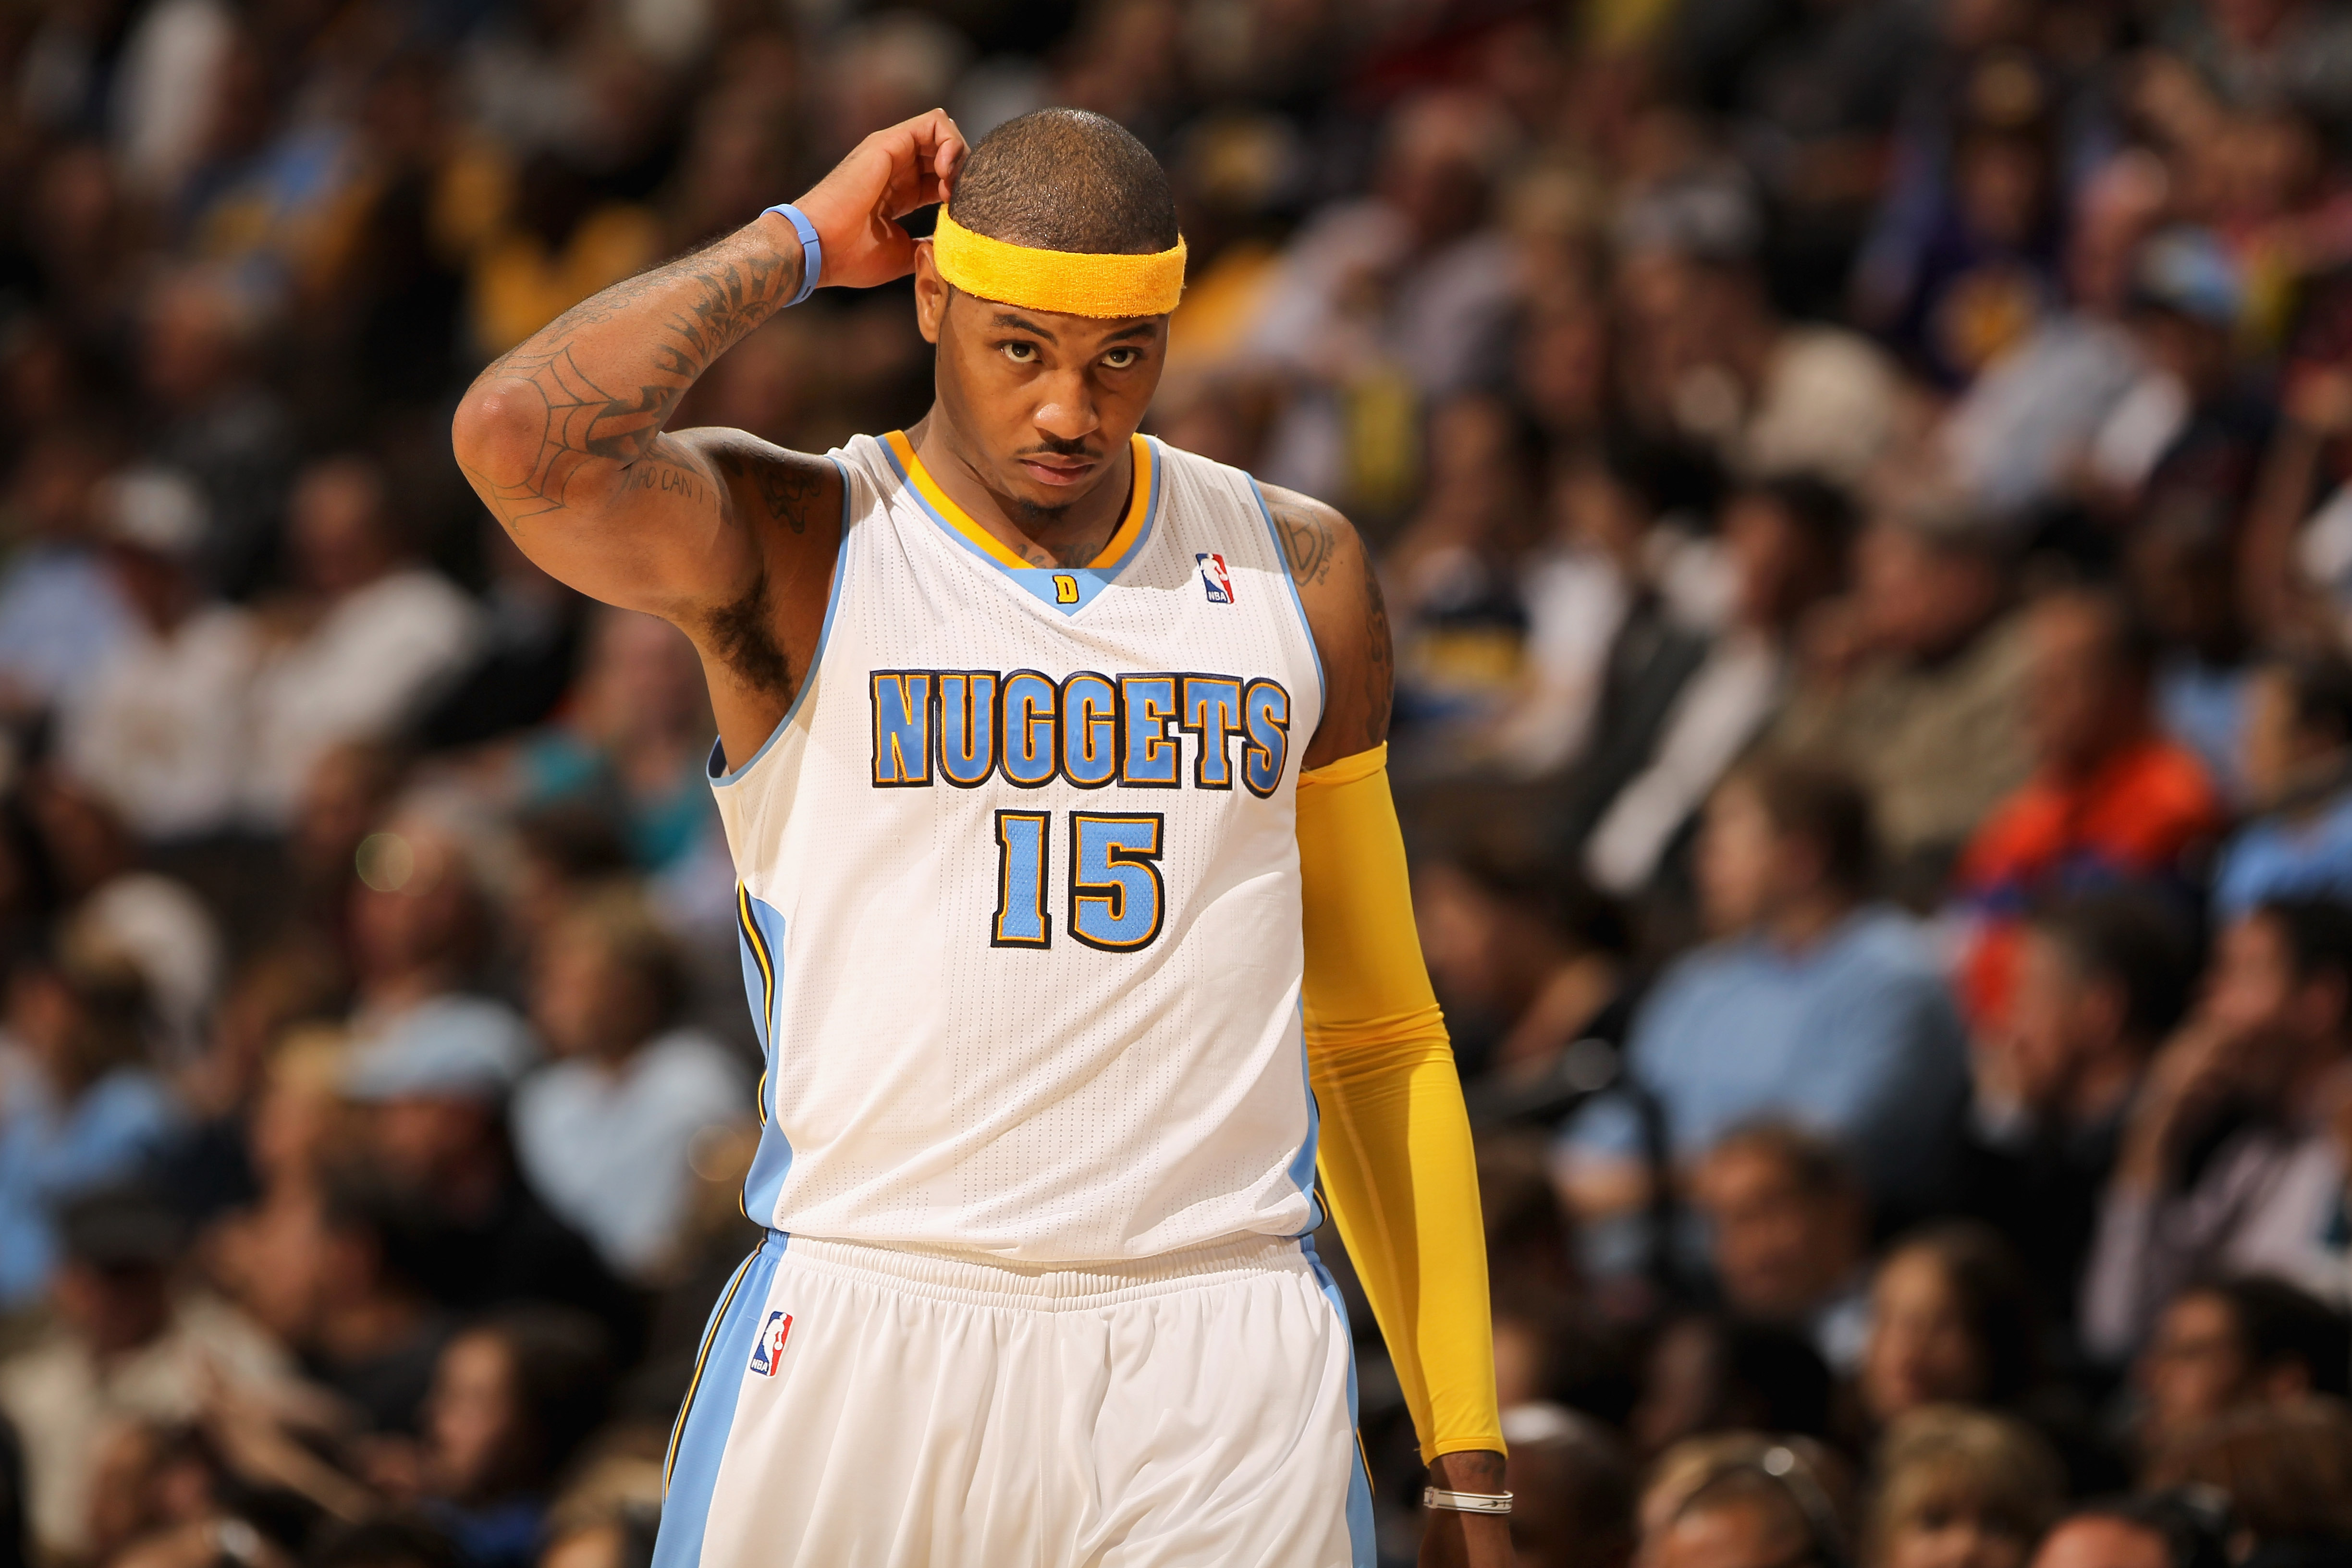 DENVER - NOVEMBER 11:  Carmelo Anthony #15 of the Denver Nuggets looks on during a break in the action against the Los Angeles Lakers at the Pepsi Center on November 11, 2010 in Denver, Colorado. The Nuggets defeated the Lakers 118-112.  NOTE TO USER: Use